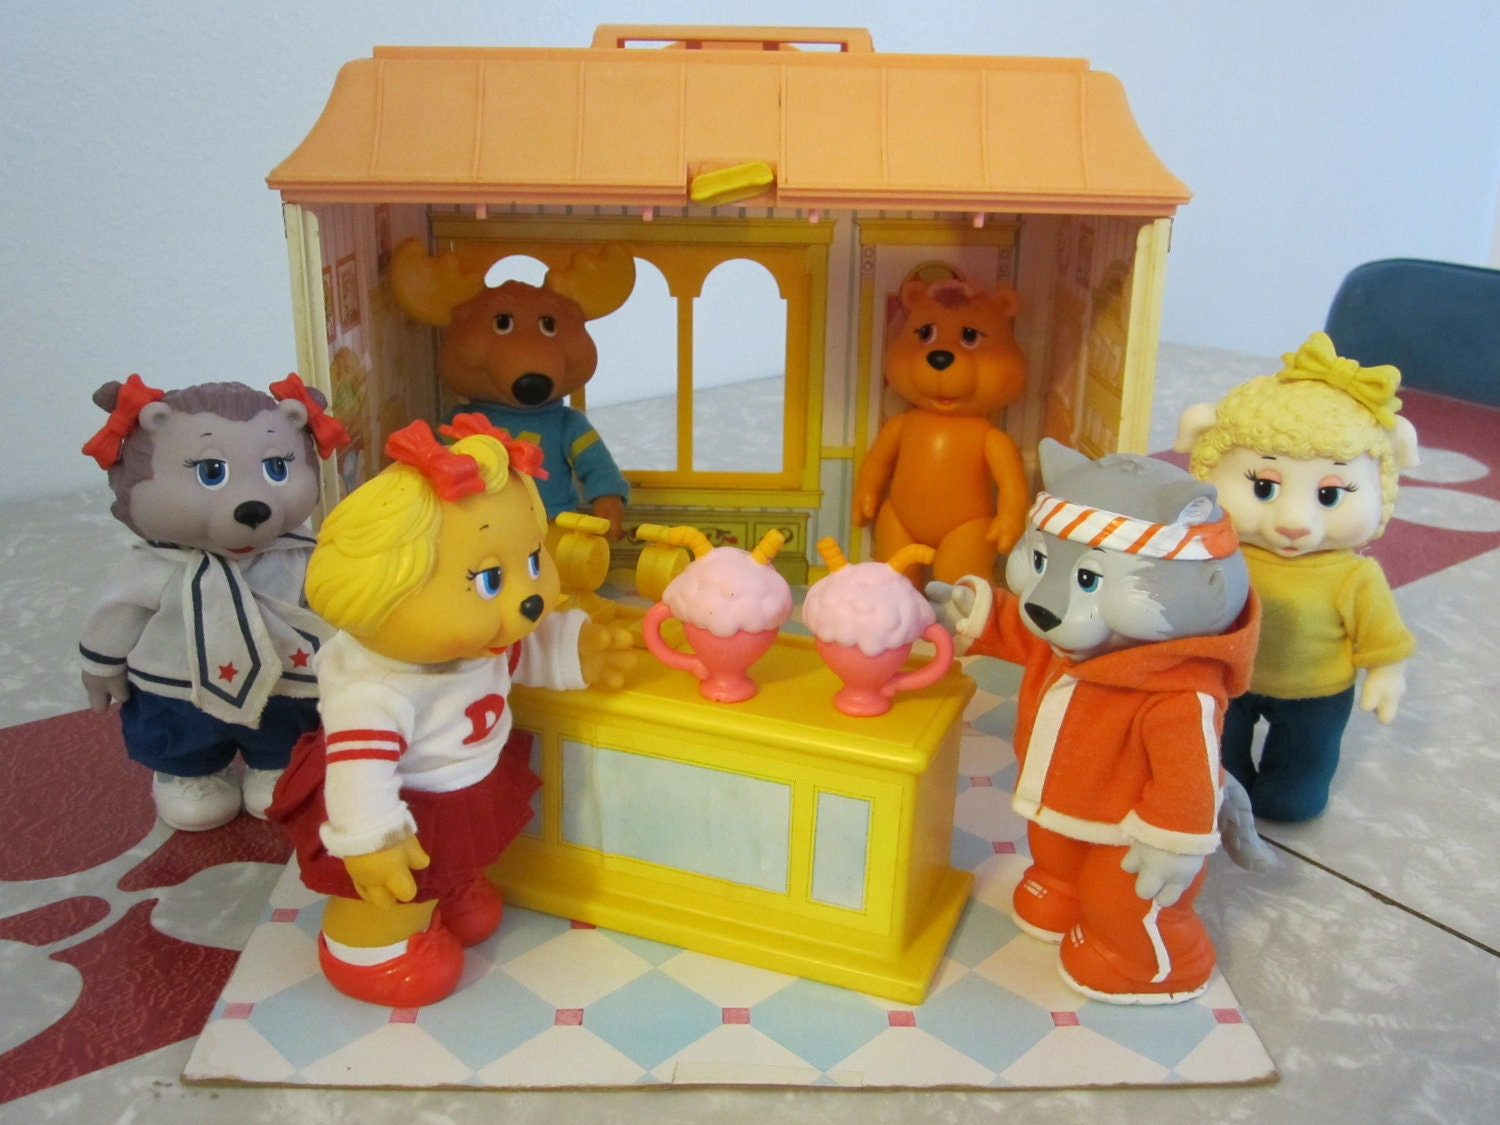 Boys Toys From The 80s : Get along gang hoofnagel s ice cream emporium or supper